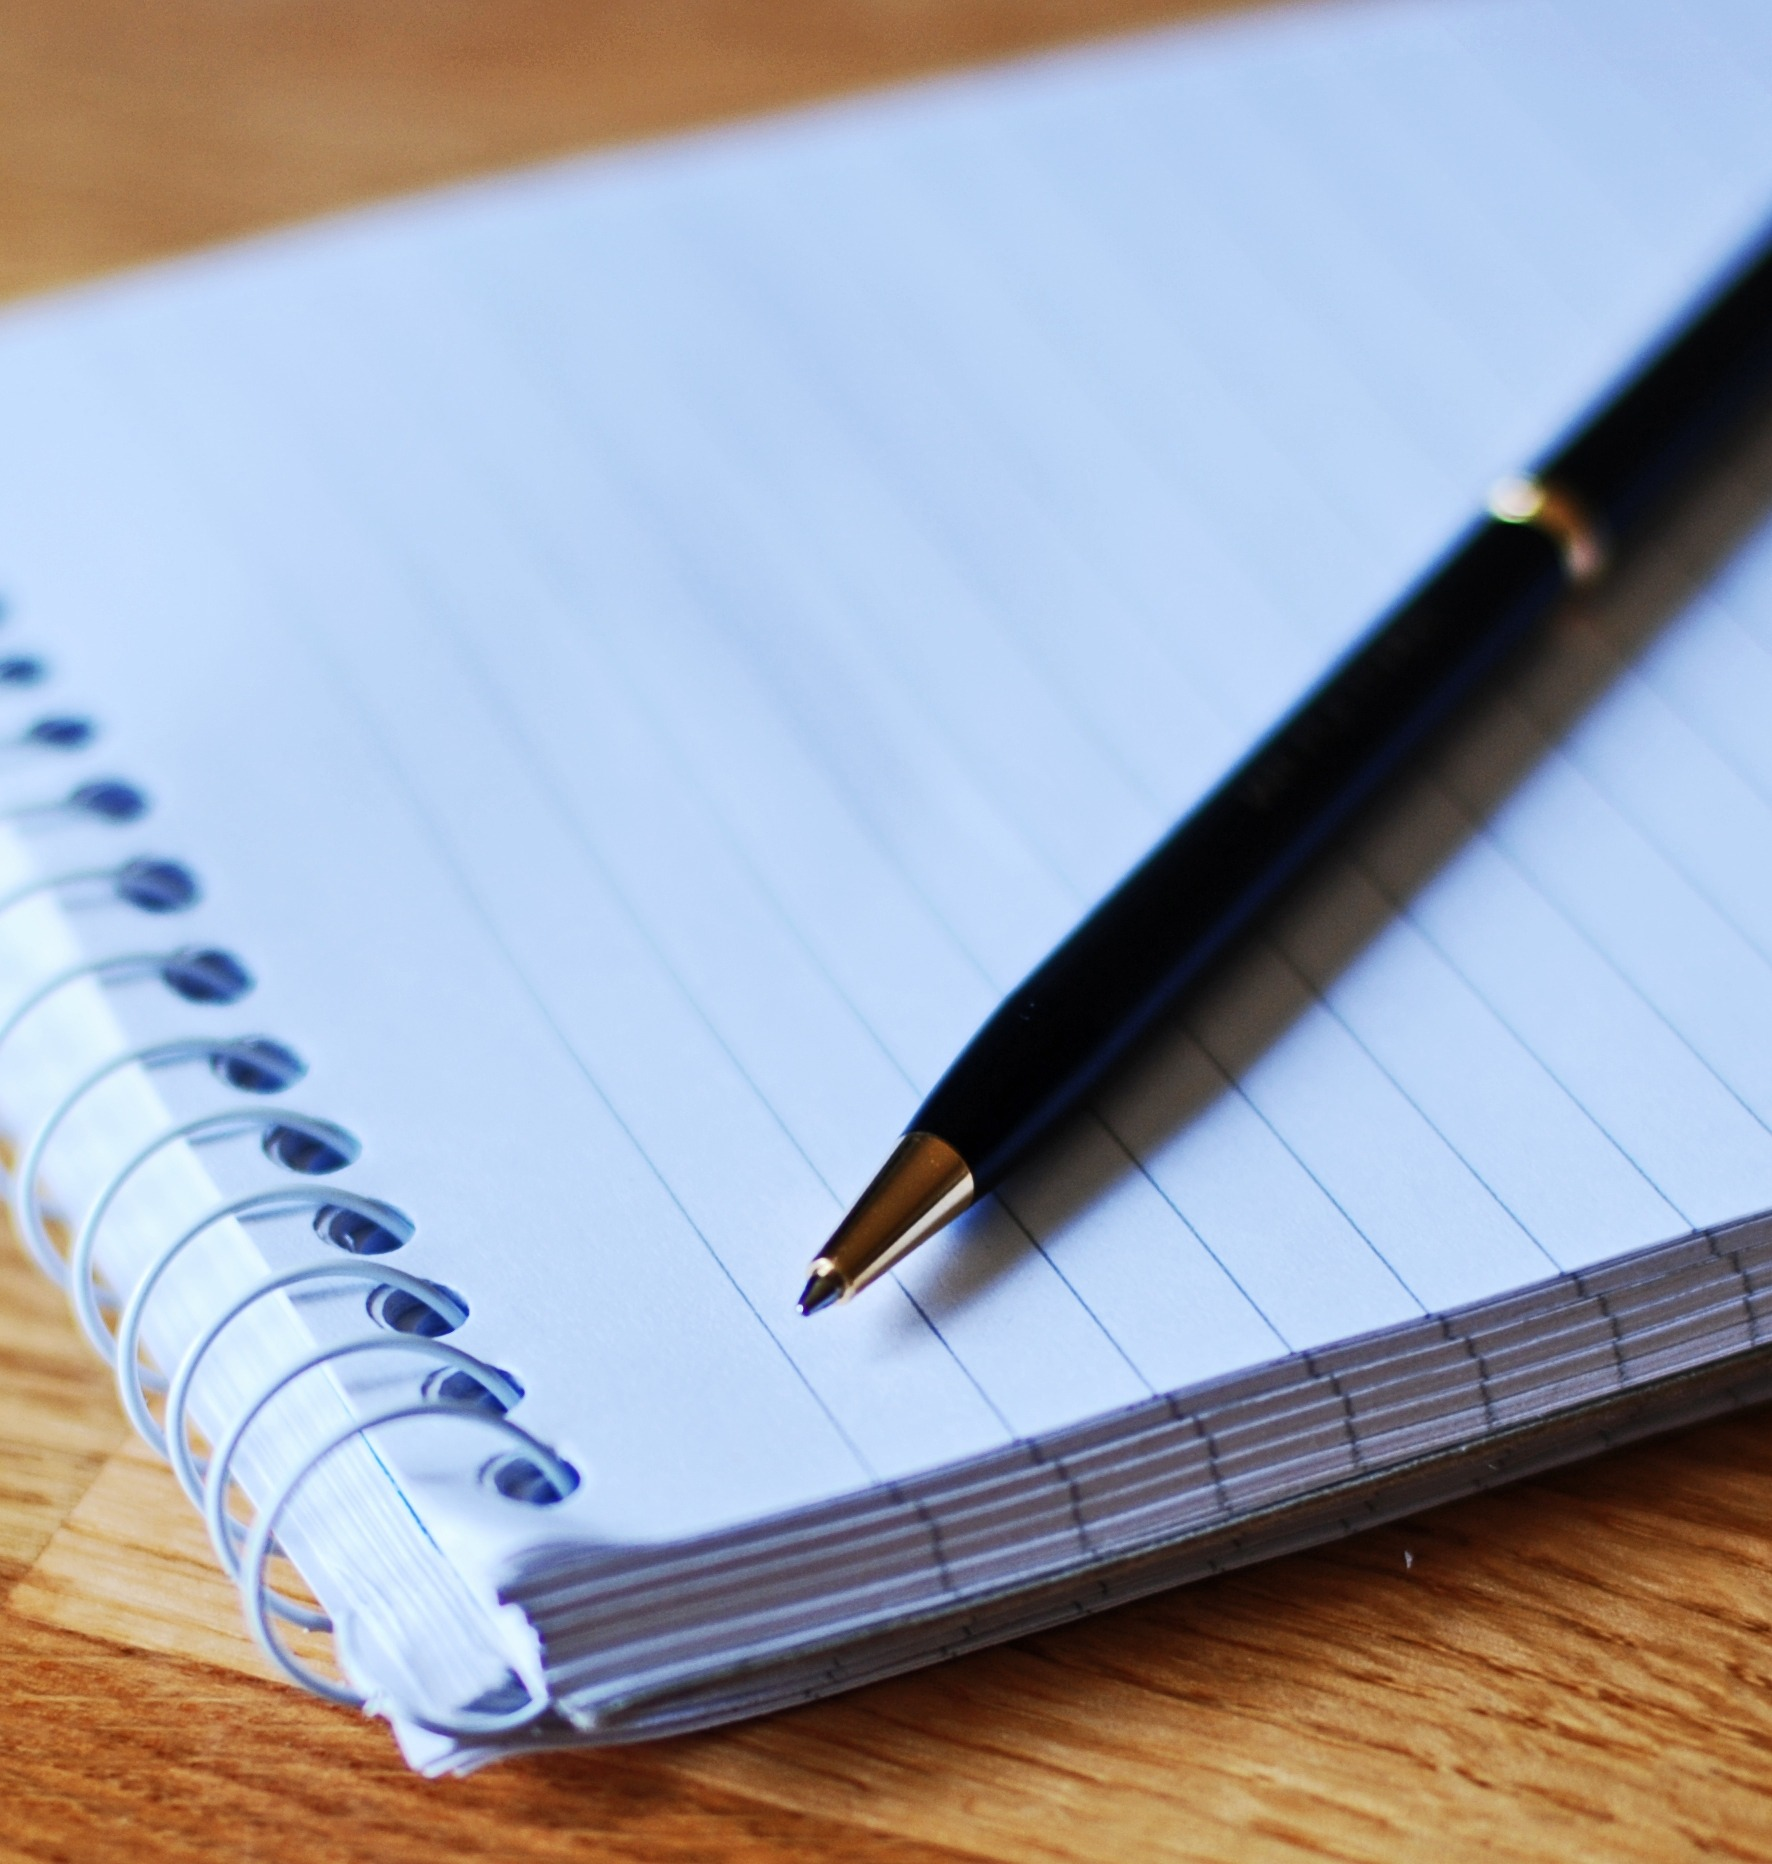 Stourbridge poets urged to put pen to paper for the chance to win £1,000.